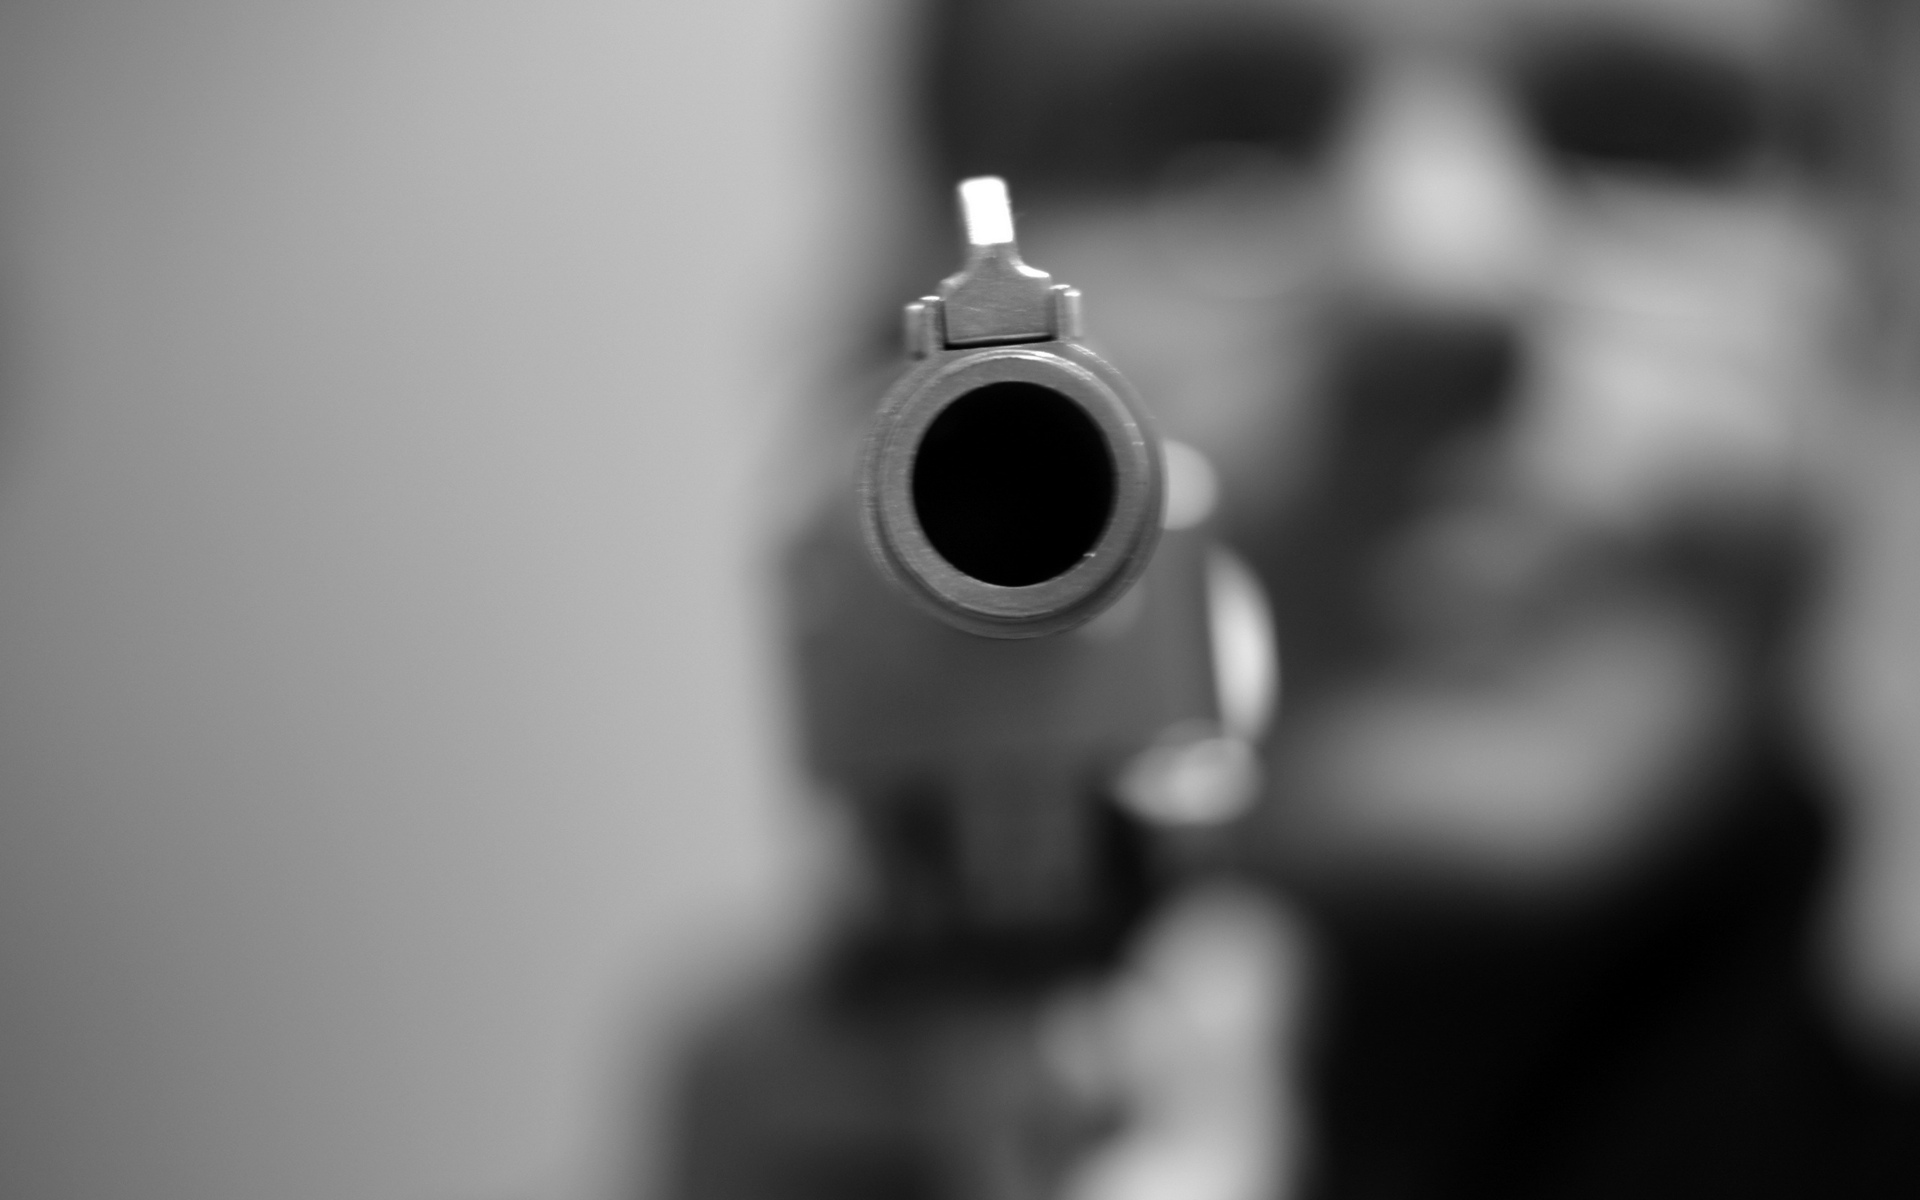 Weapons guns pistol black white photography barrel hole circle shape metal steel men male boy people pov face eyes mood situation emotion angry violence